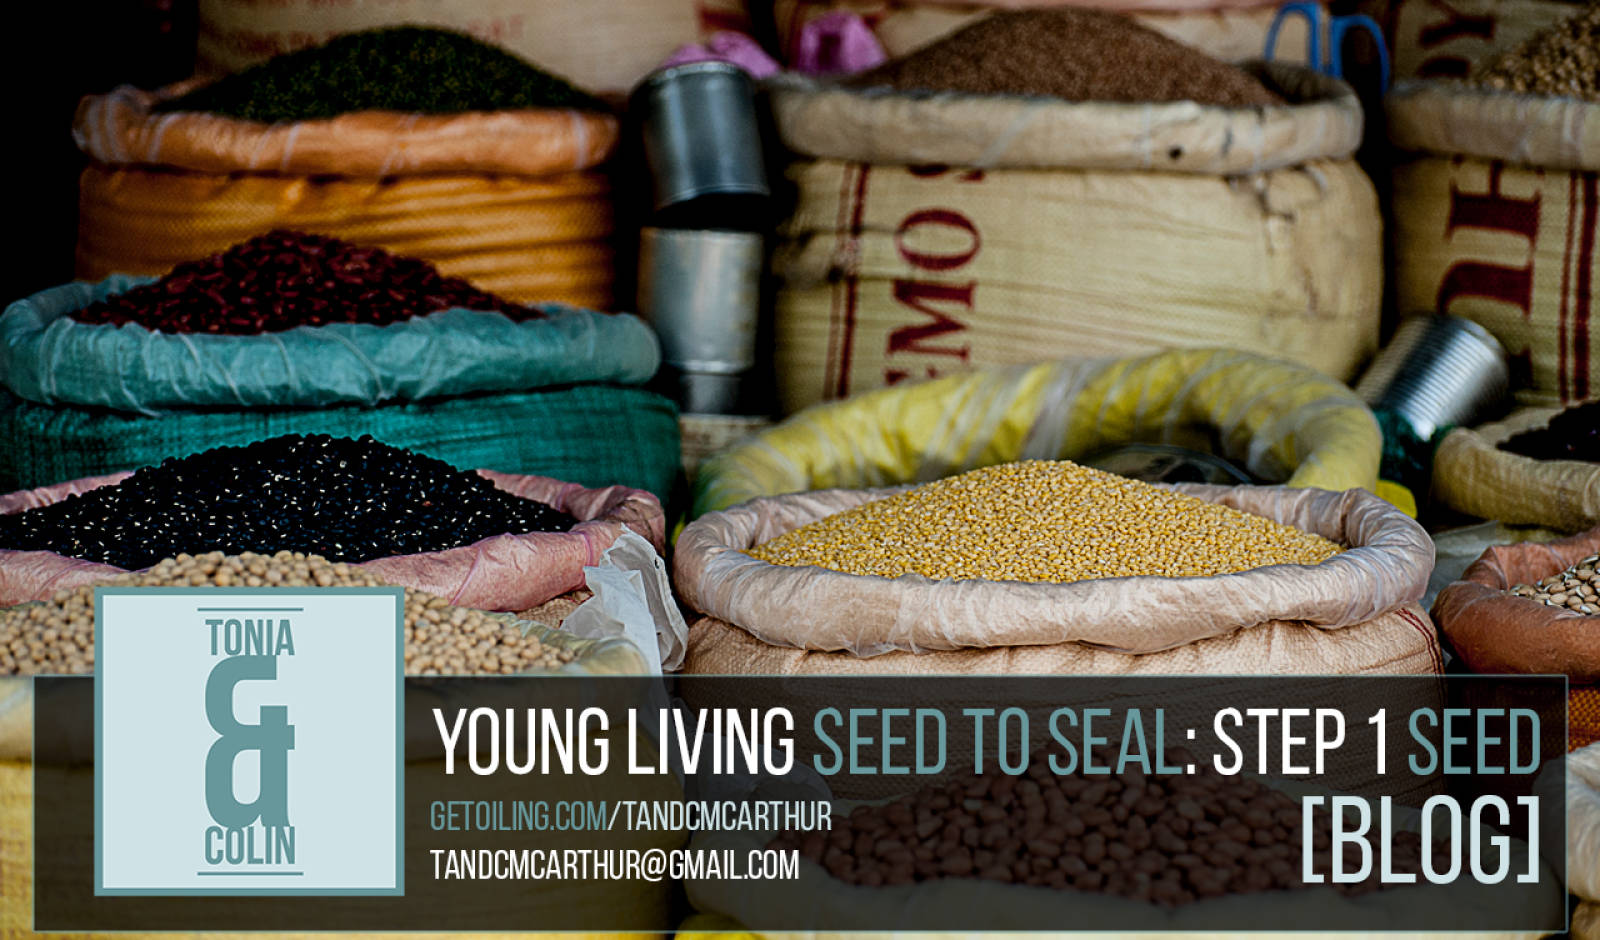 Young Living Essential Oils Seed to Seal Process - Step 1: Seed